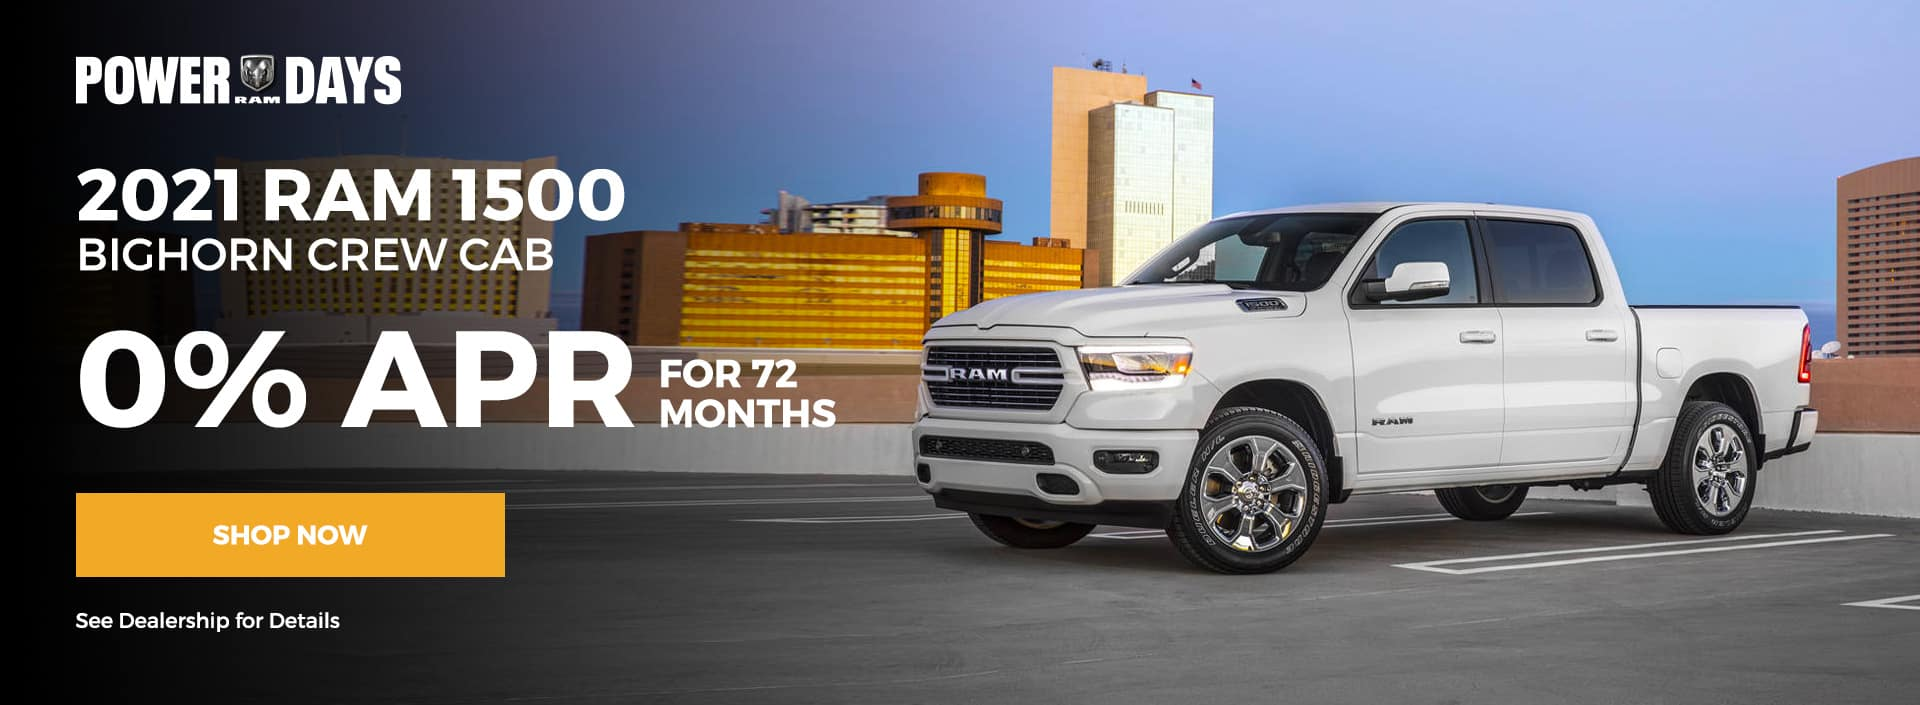 2021 Ram 1500 Crew Cab 0% for 72 months